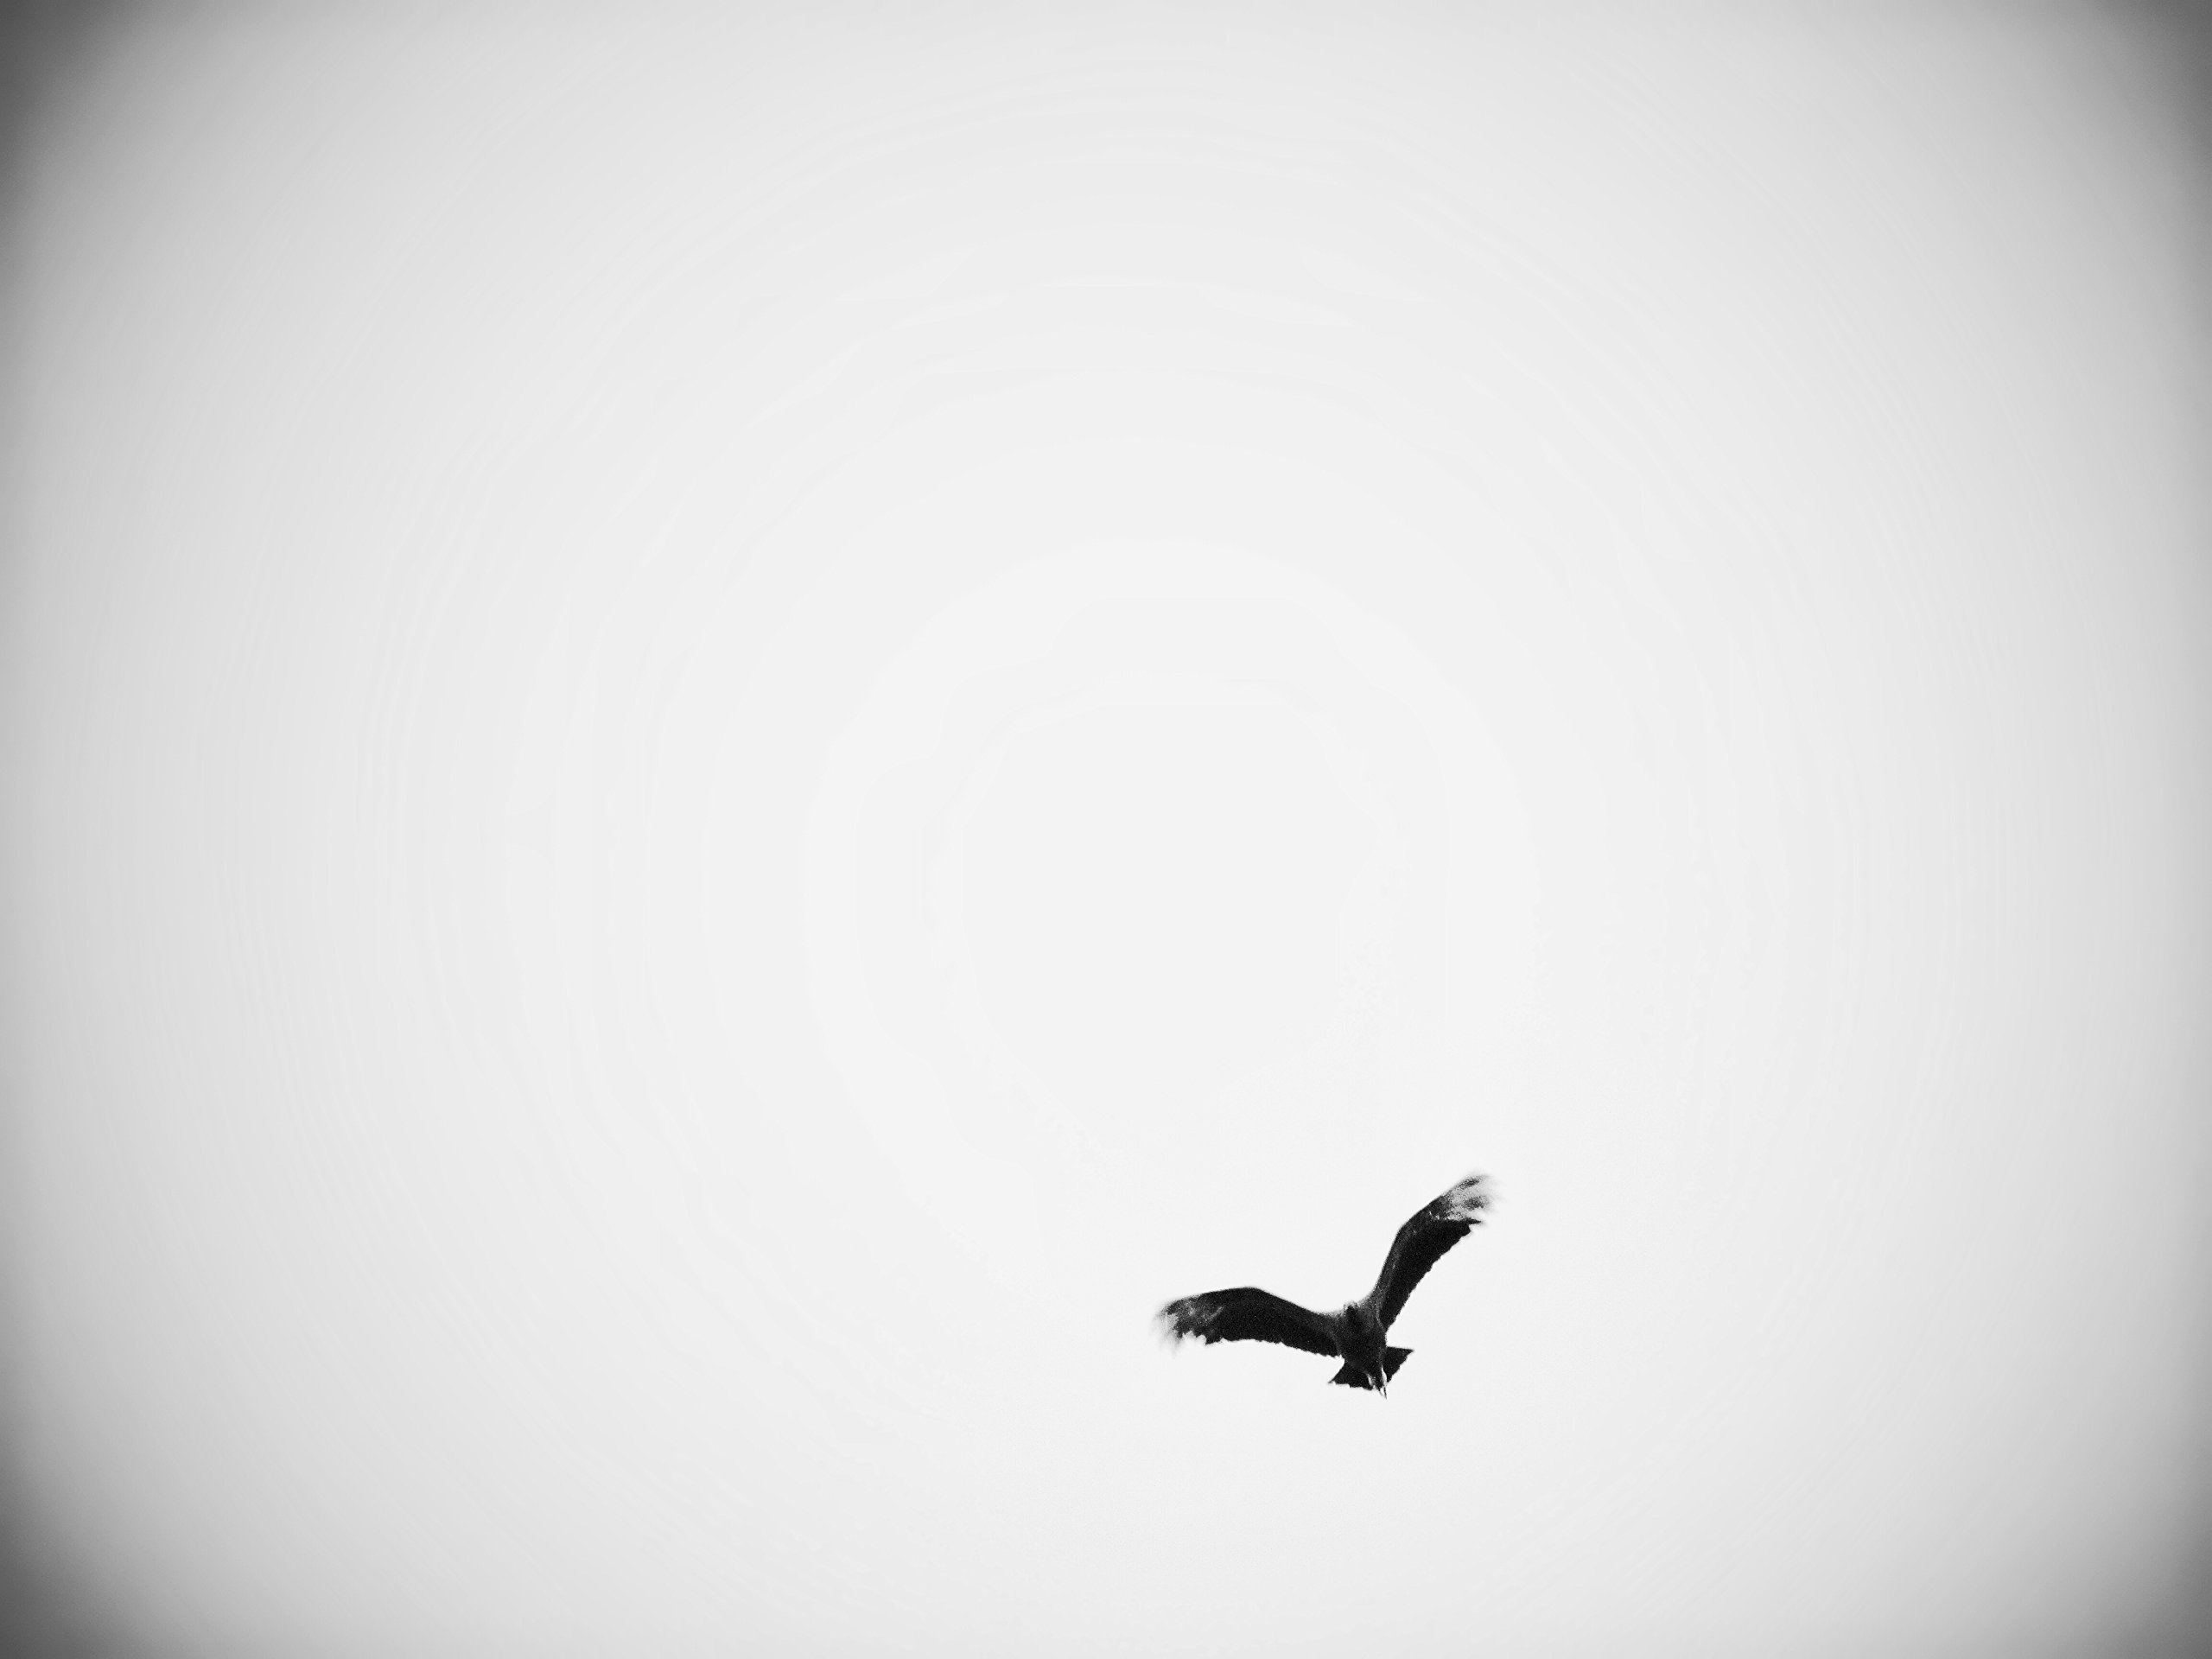 Black And White Bird by